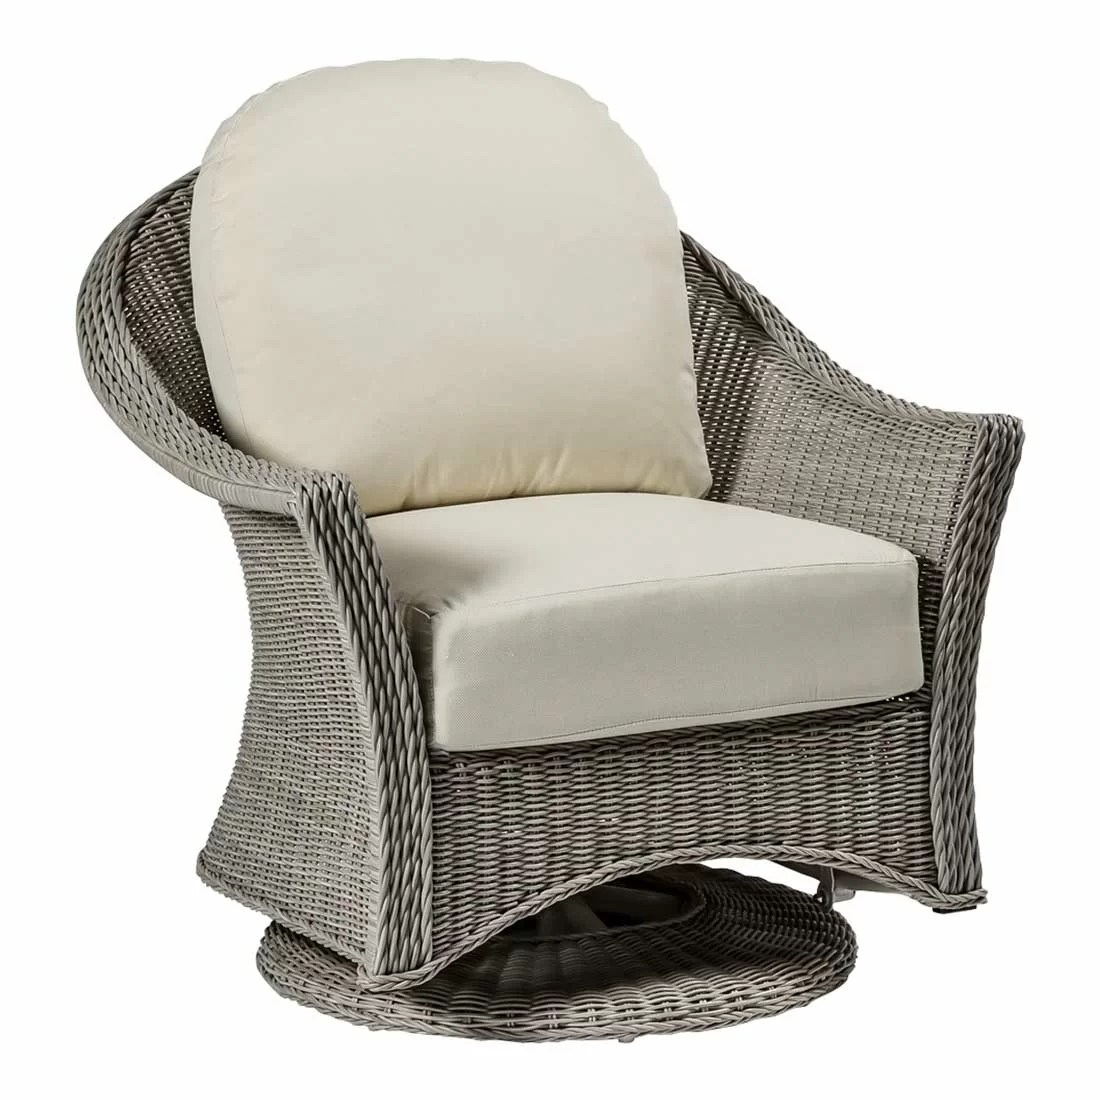 Cushions For Glider Chairs Regent Swivel Glider Chair With Cushions